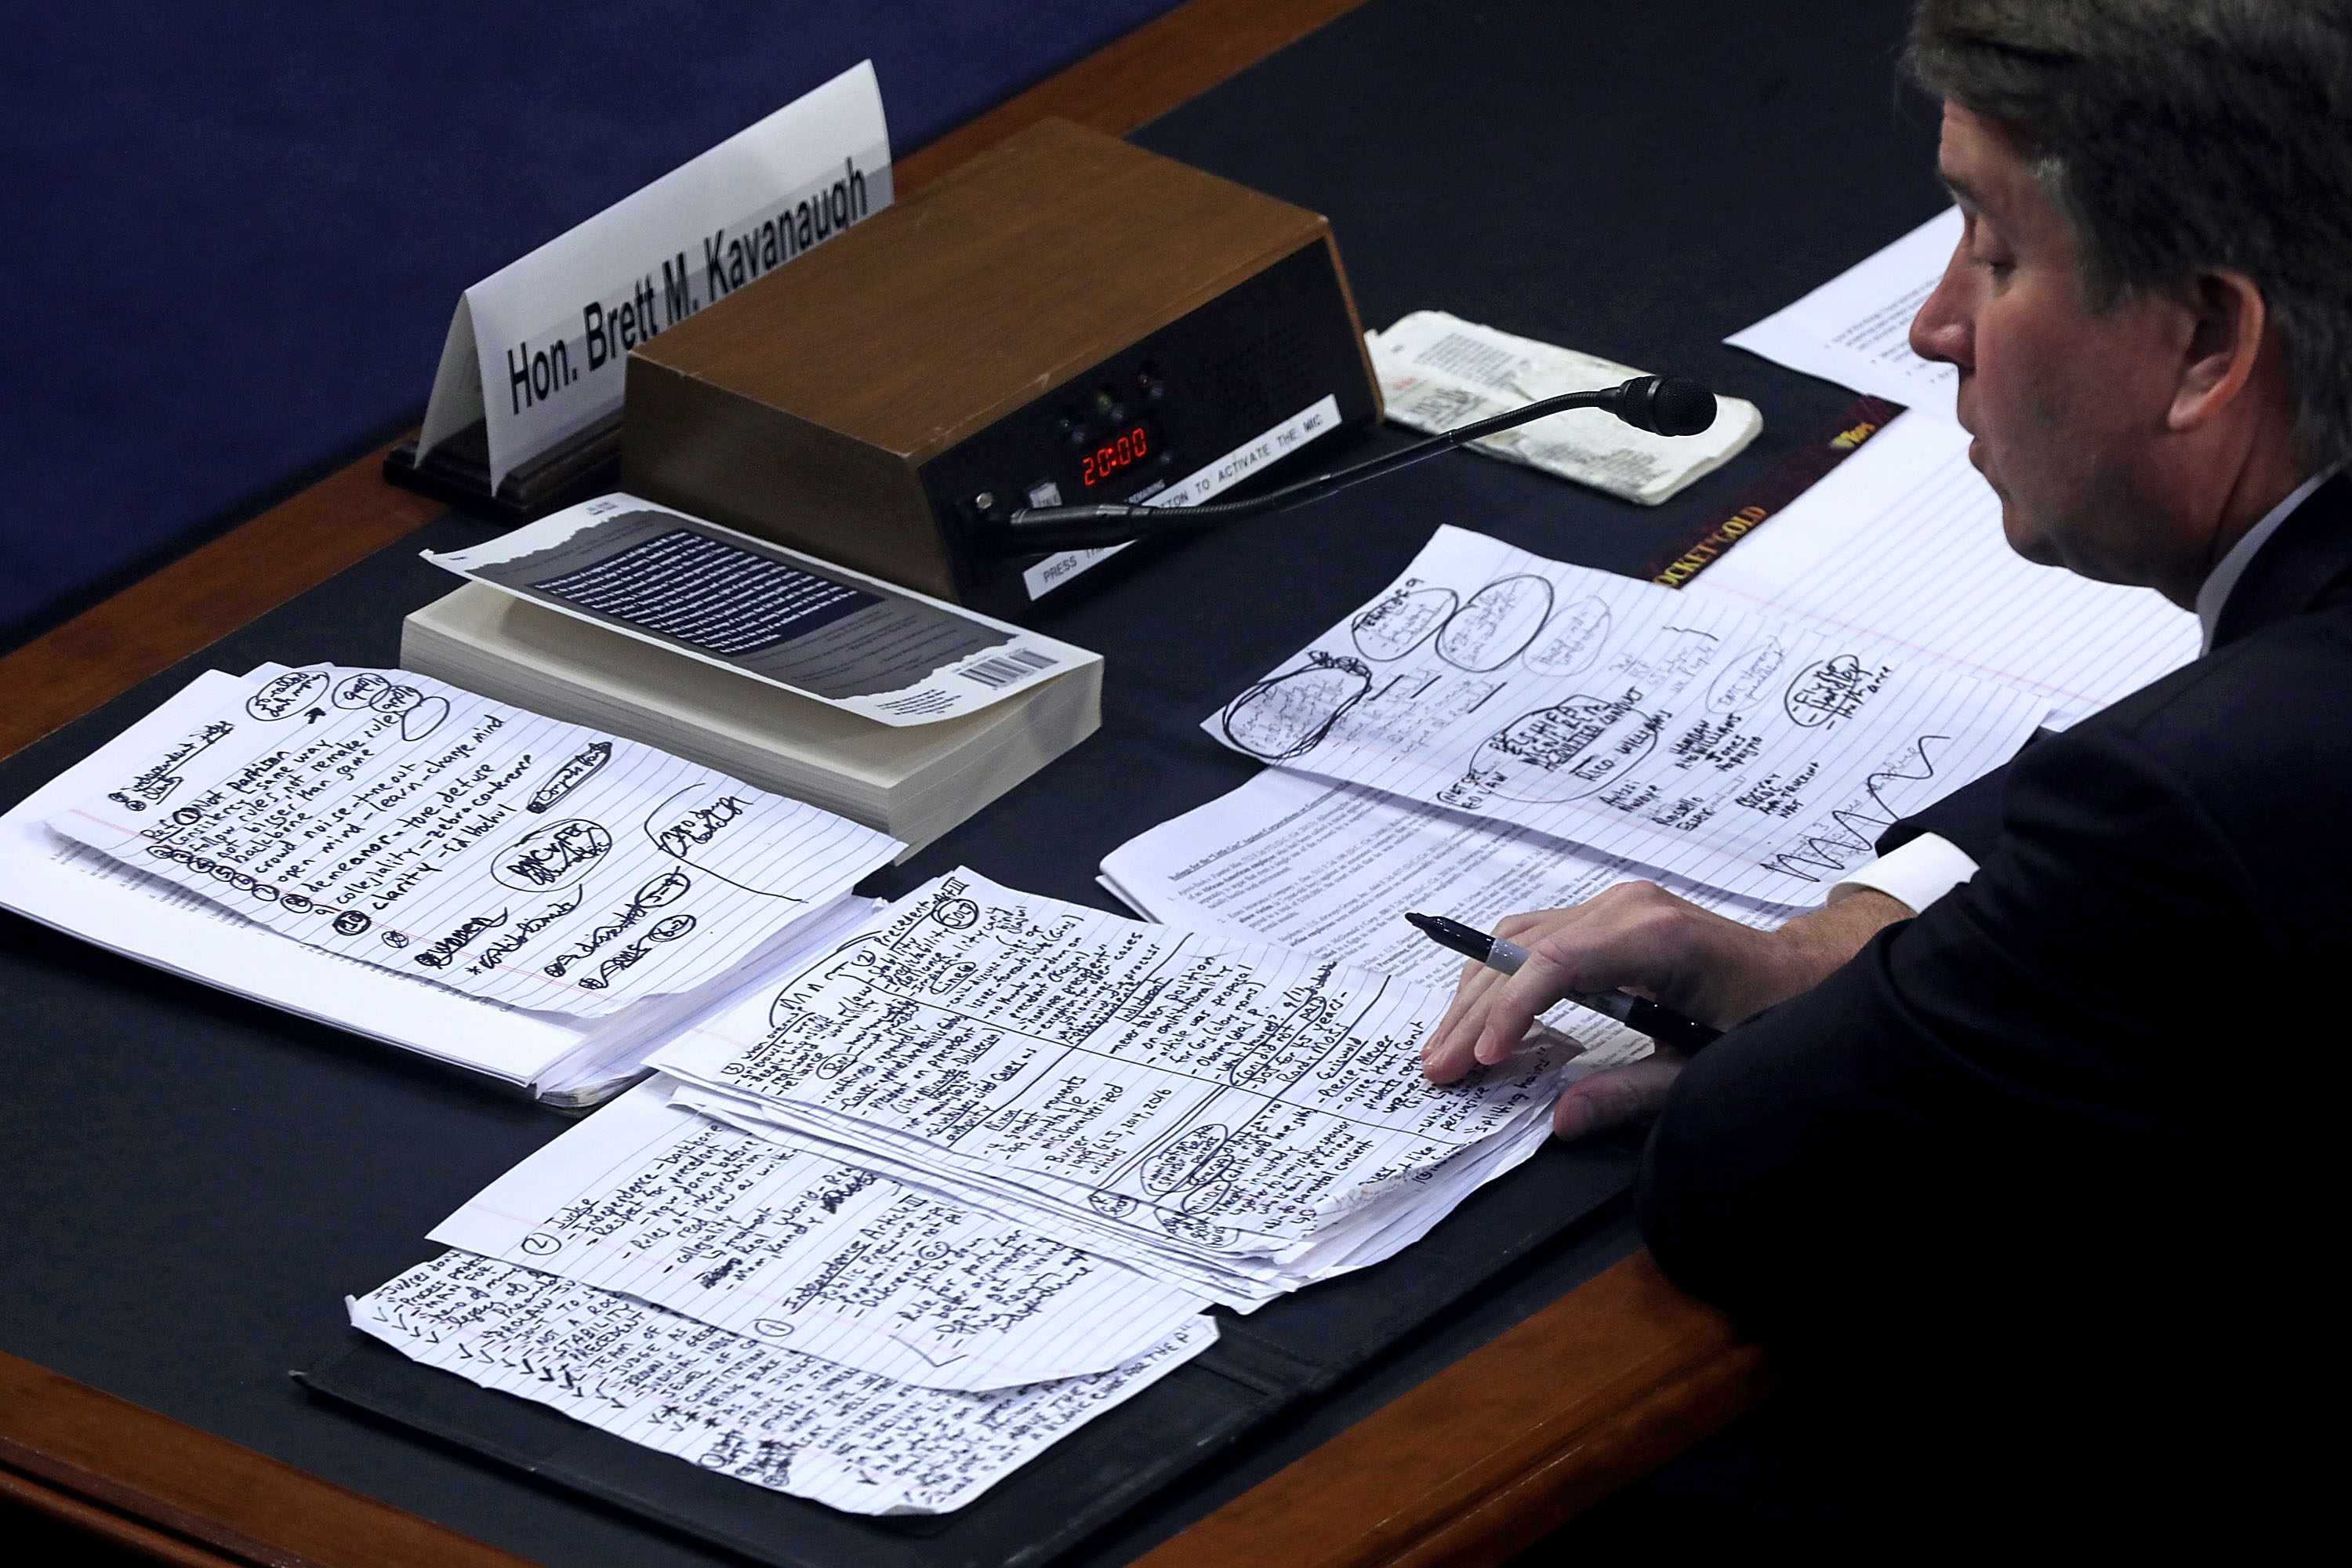 Supreme Court nominee Judge Brett Kavanaugh looks over his handwritten notes while testifying before the Senate Judiciary Committee on Sept. 6, 2018 in Washington, DC.